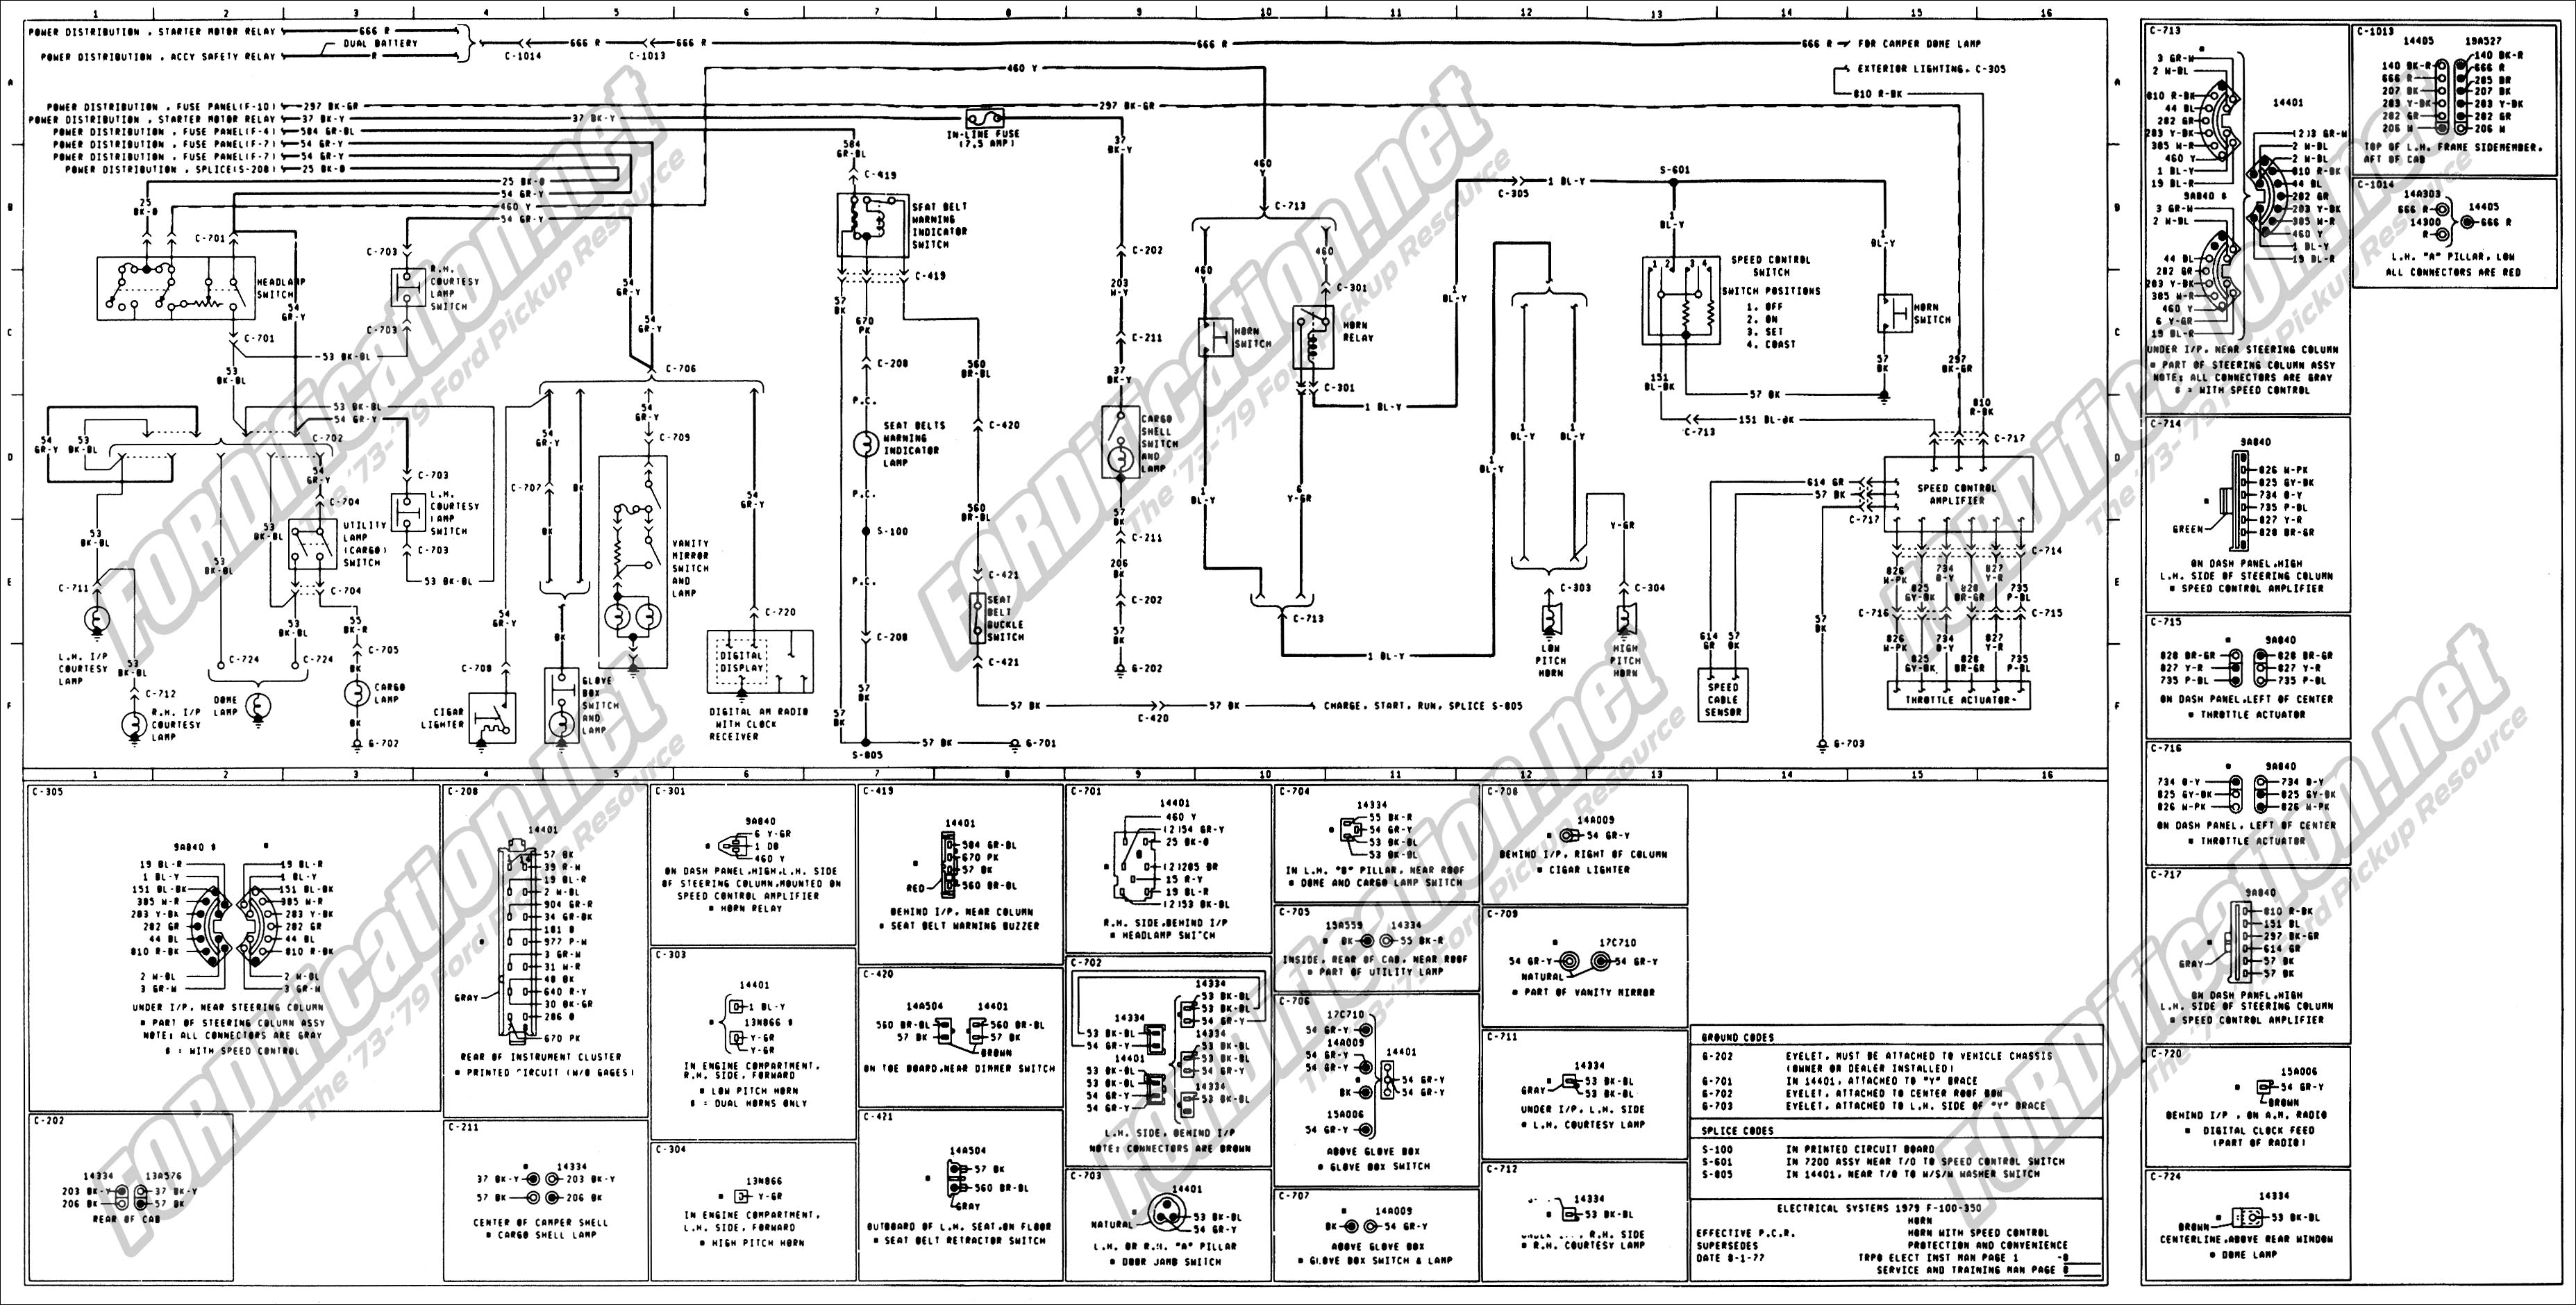 83 ford f100 wiring diagram wiring diagram1970 f250 wiring diagram wiring diagram